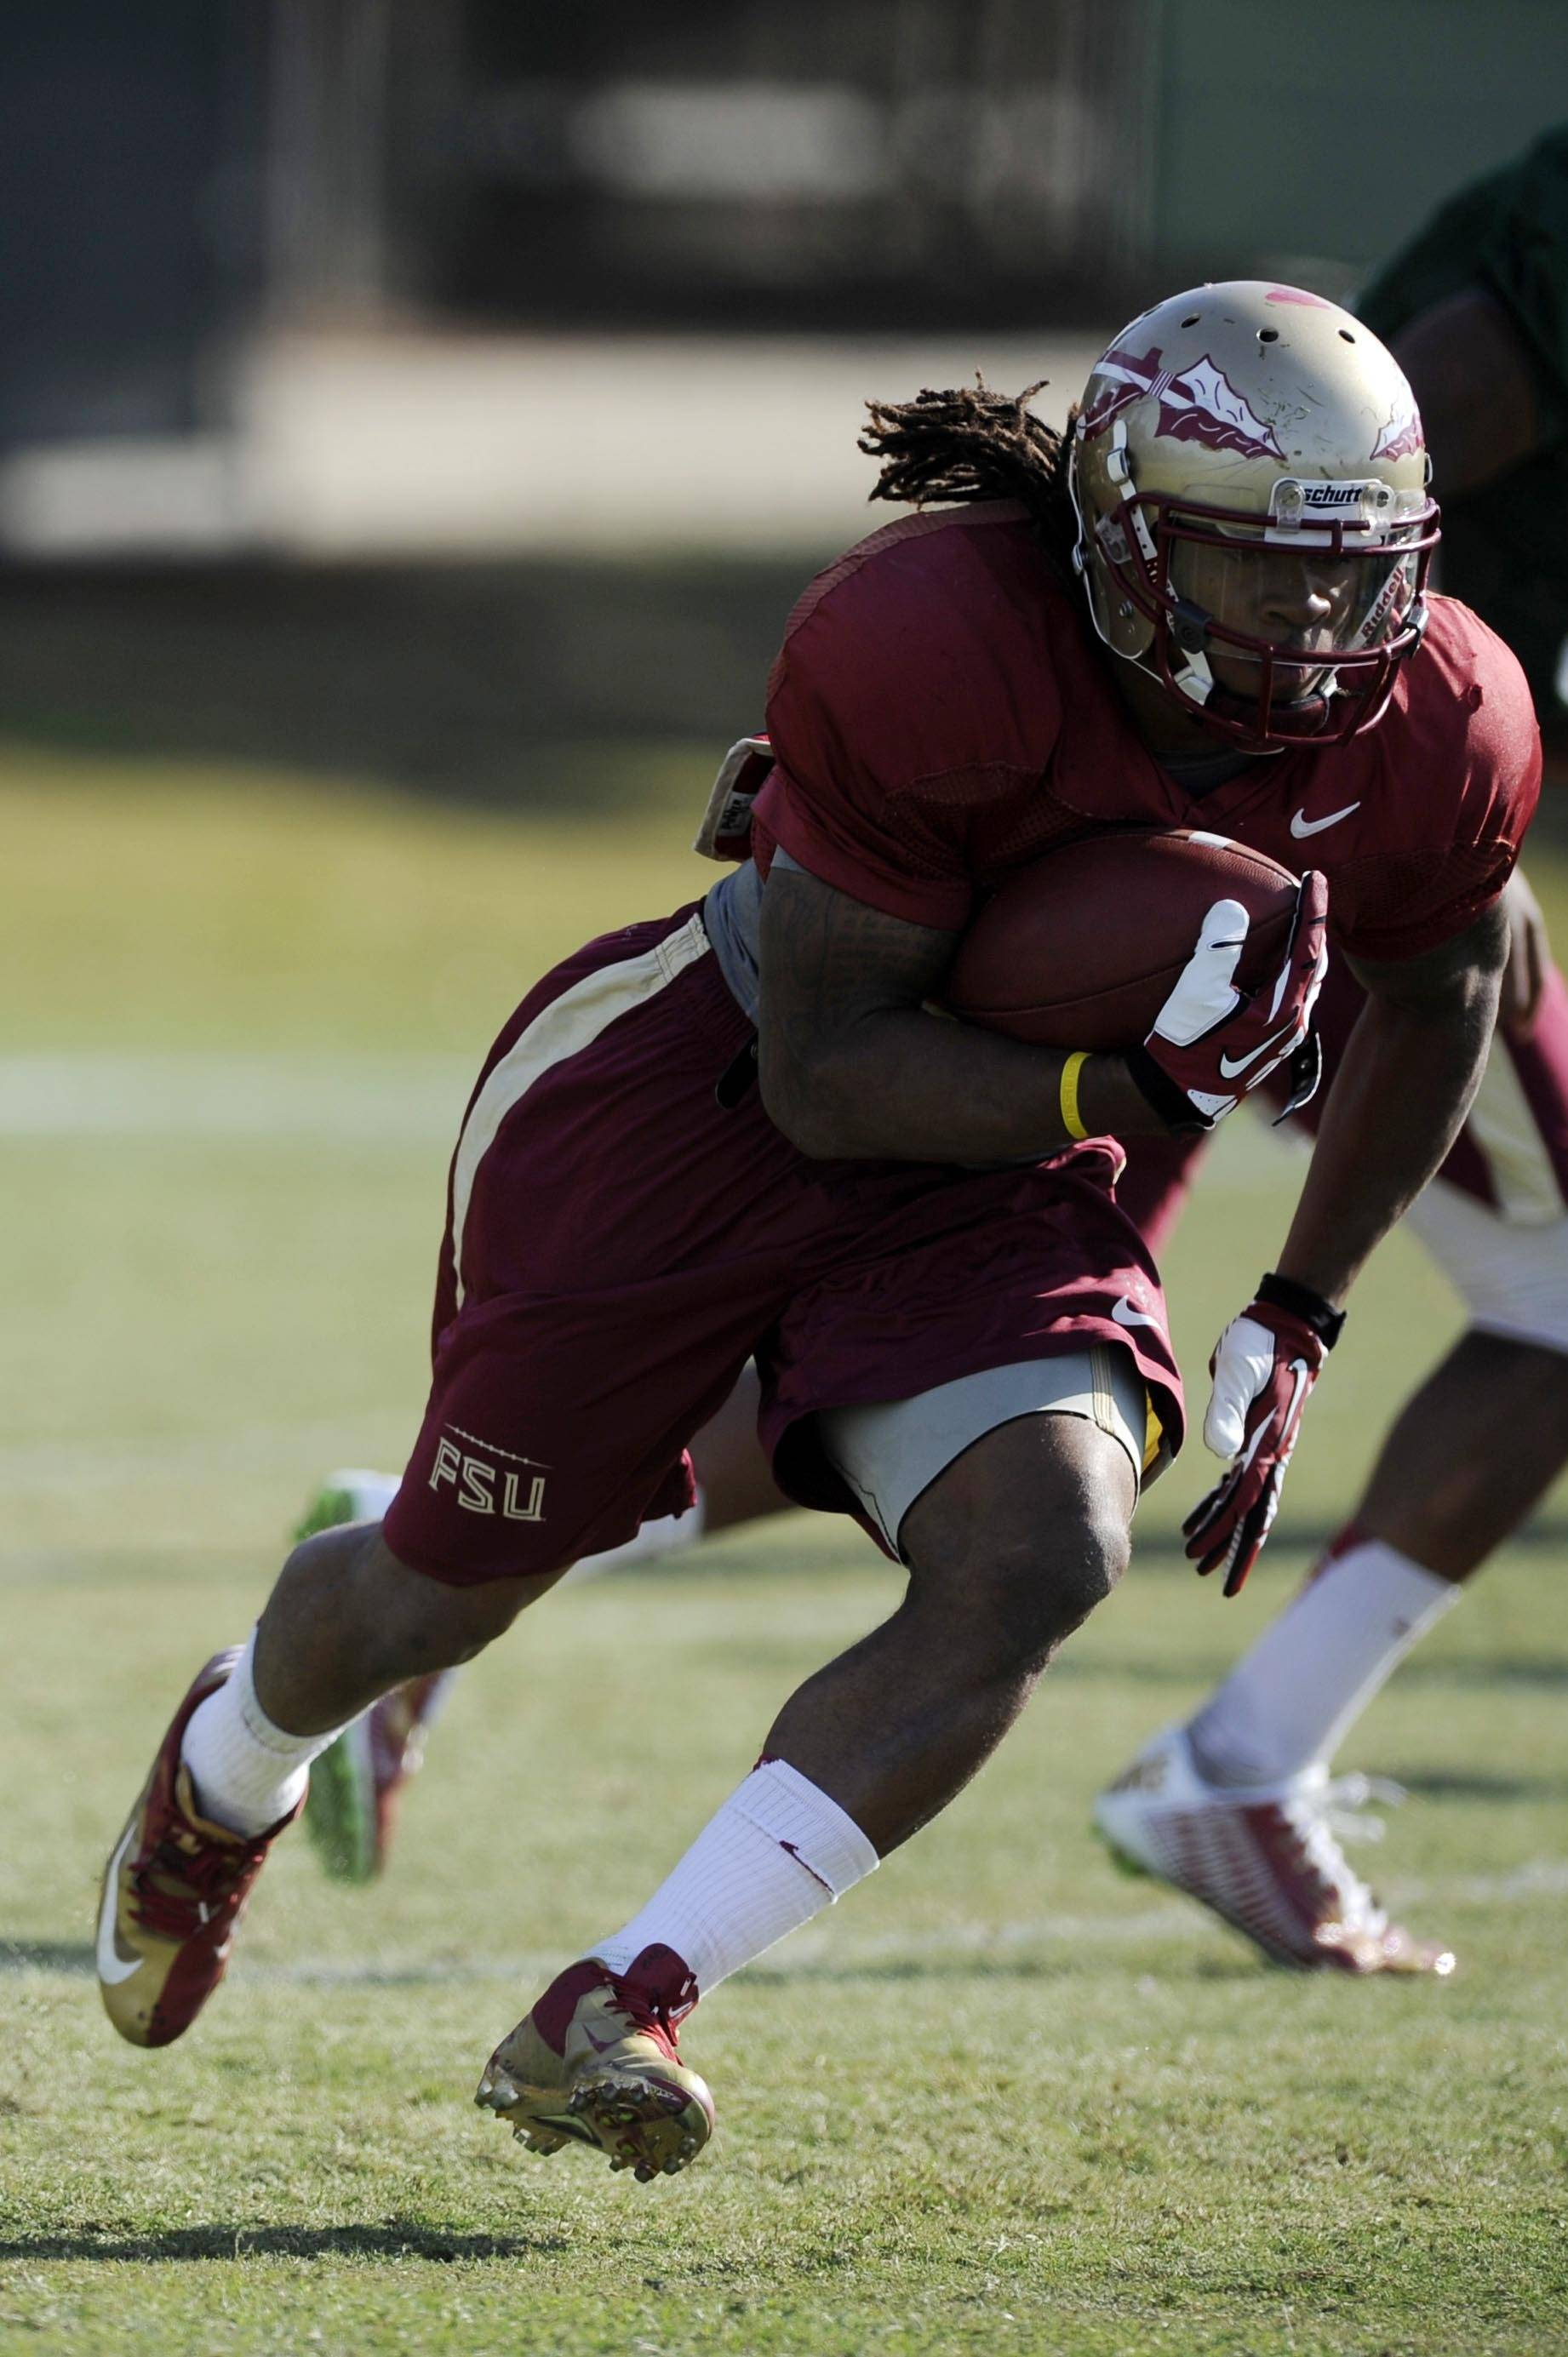 Jan 3, 2014; Orange, CA, USA; Florida State Seminoles running back Devonta Freeman (8) during practice for the BCS National Championship football game against the Auburn Tigers at Orange Coast College. Mandatory Credit: Kelvin Kuo-USA TODAY Sports